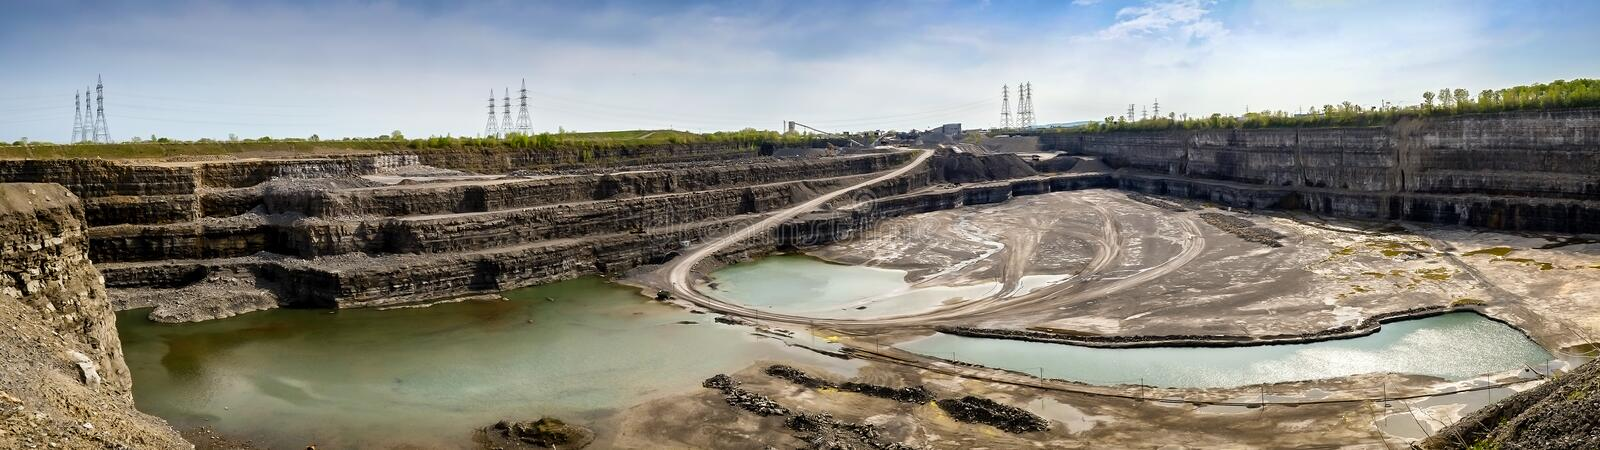 Stone-Pit. Big huge stone pit panorama with power lines in tne back royalty free stock images